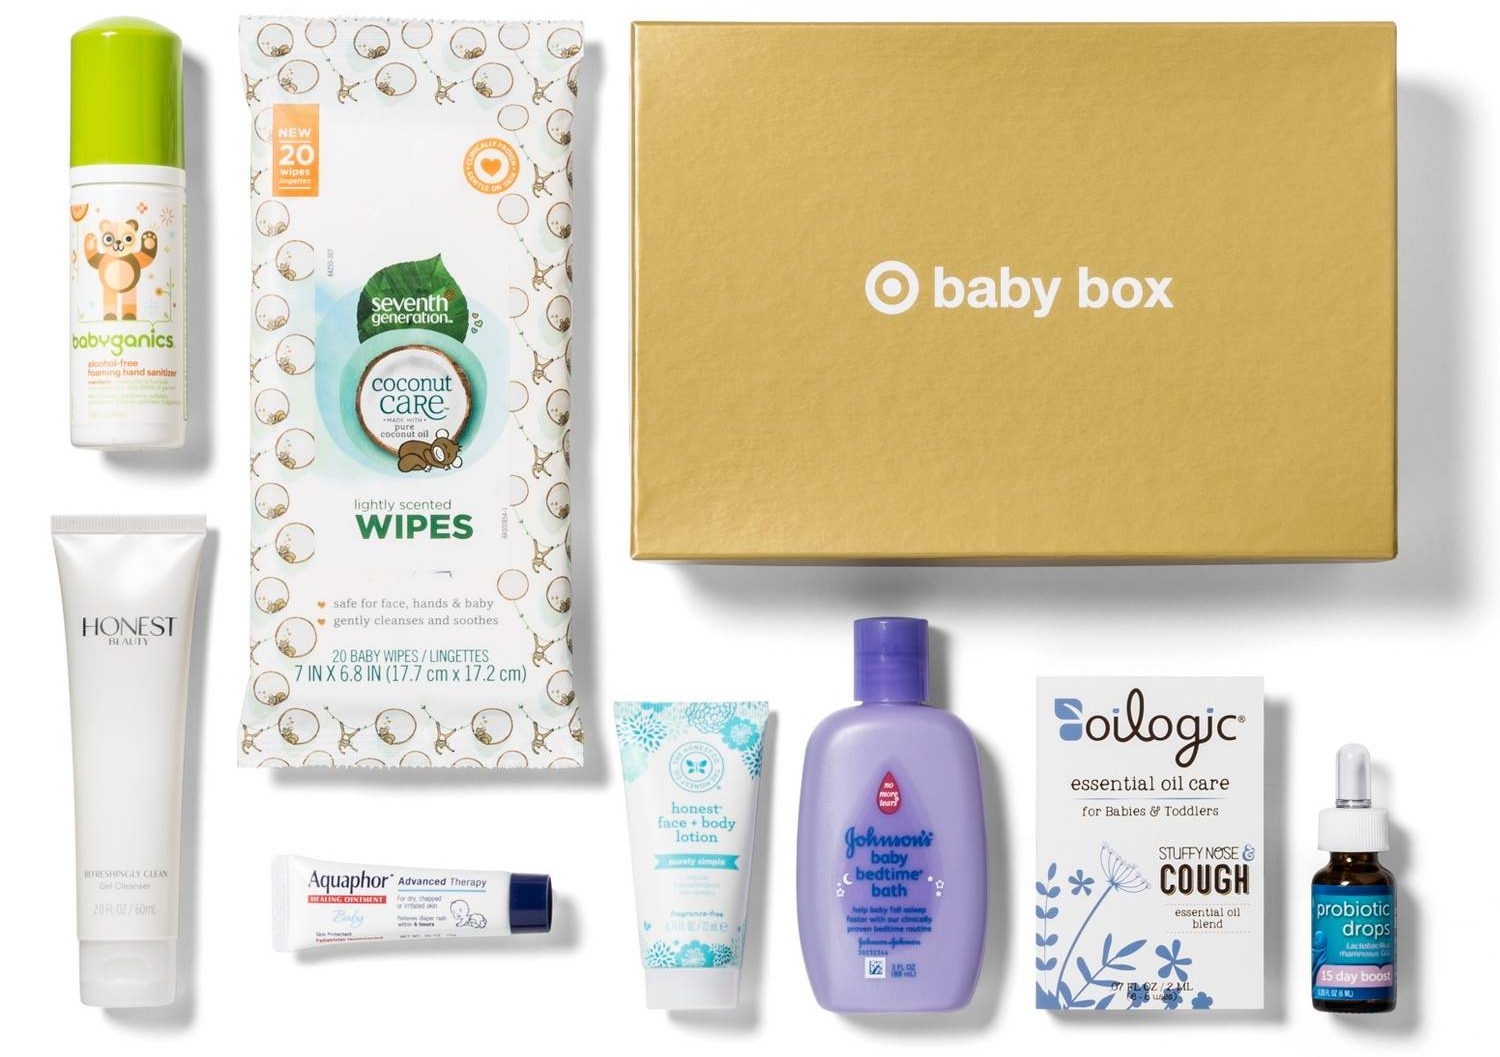 Target Baby Wipes The Target Saver Target October Baby Box 7 00 Shipped